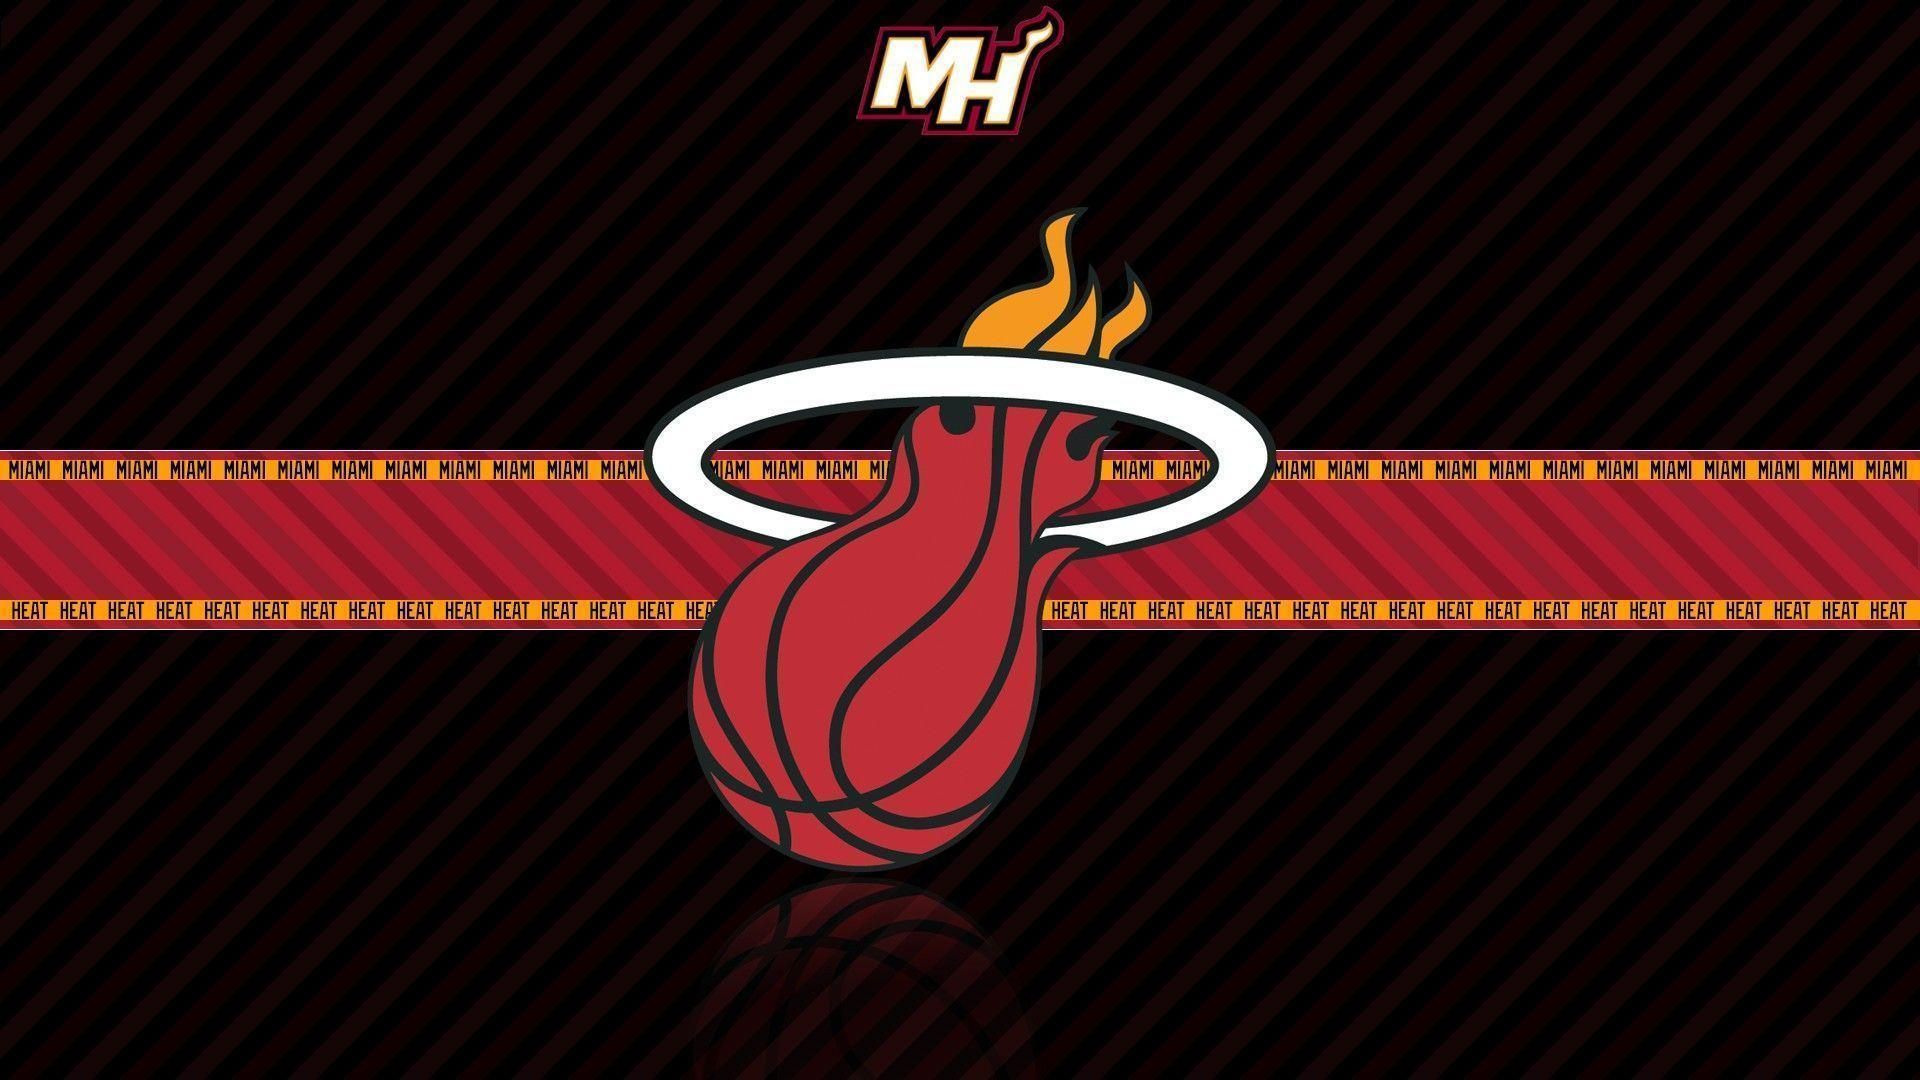 miami heat wallpapers 2017 hd - wallpaper cave